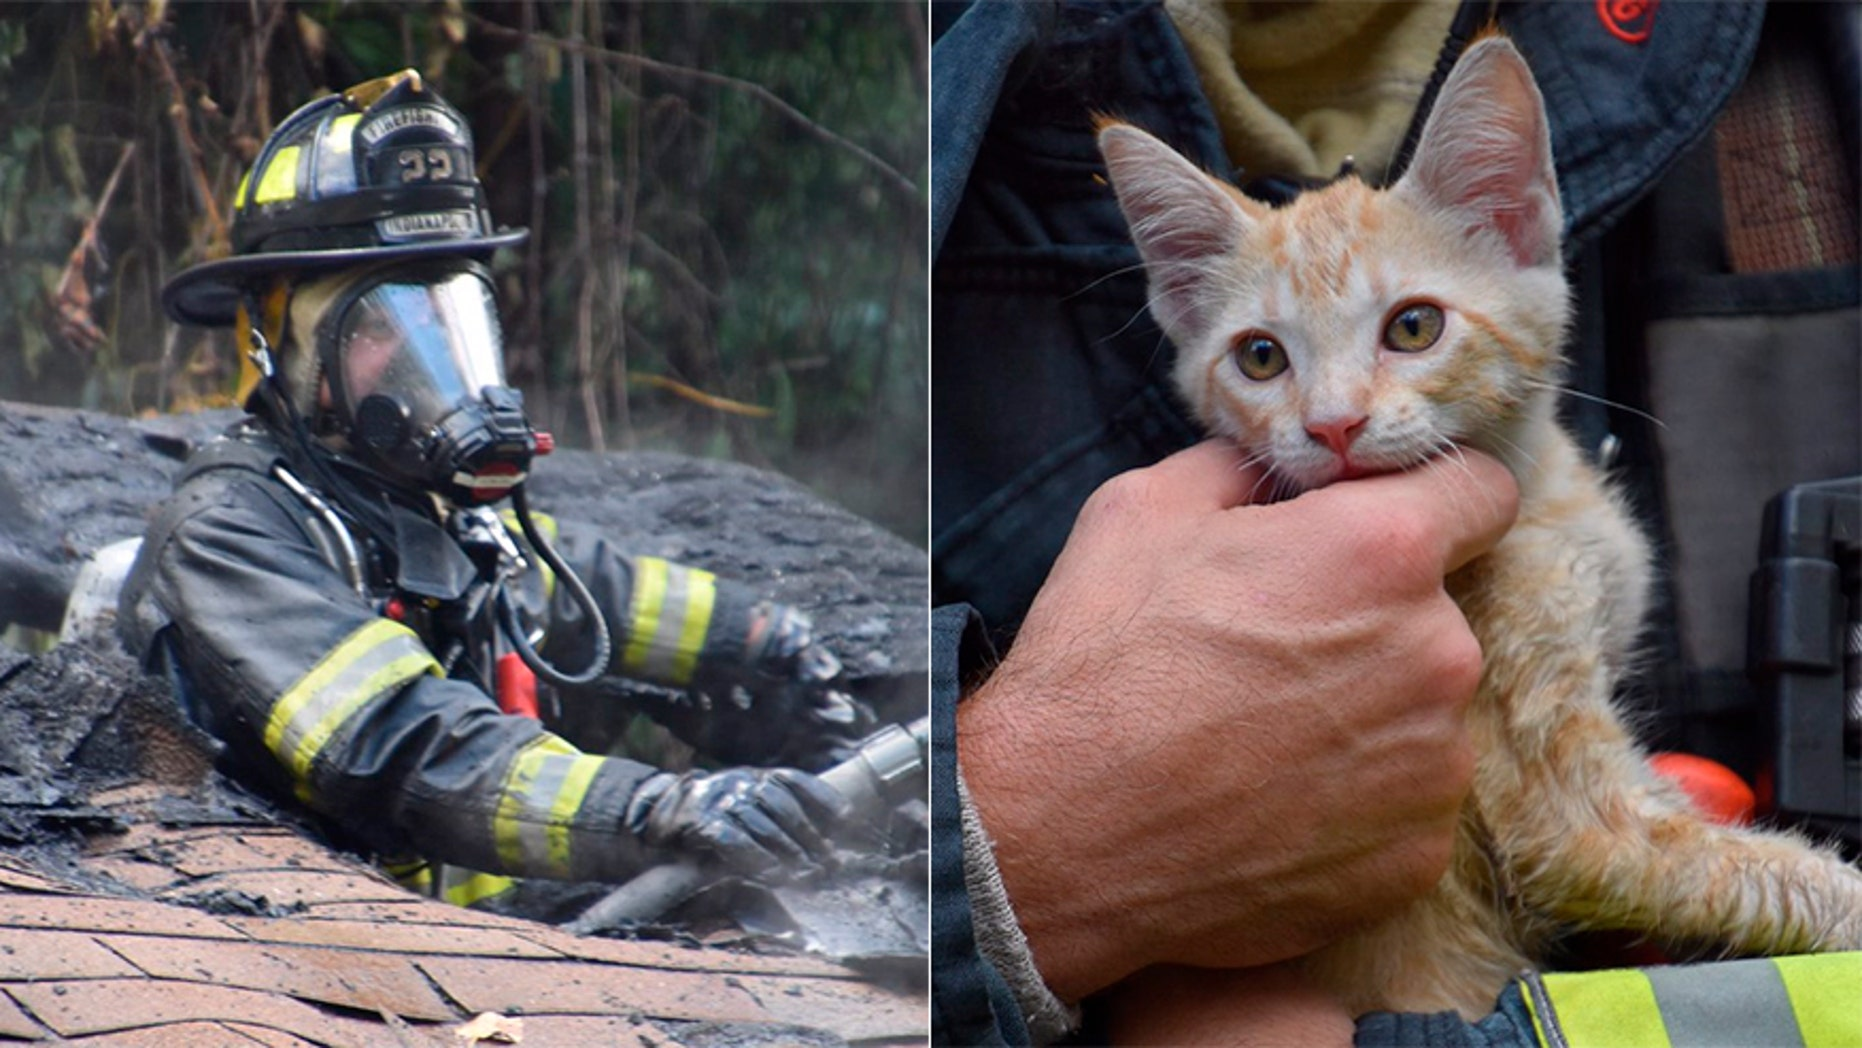 A firefighter saved this kitten from a house fire in Indianapolis.